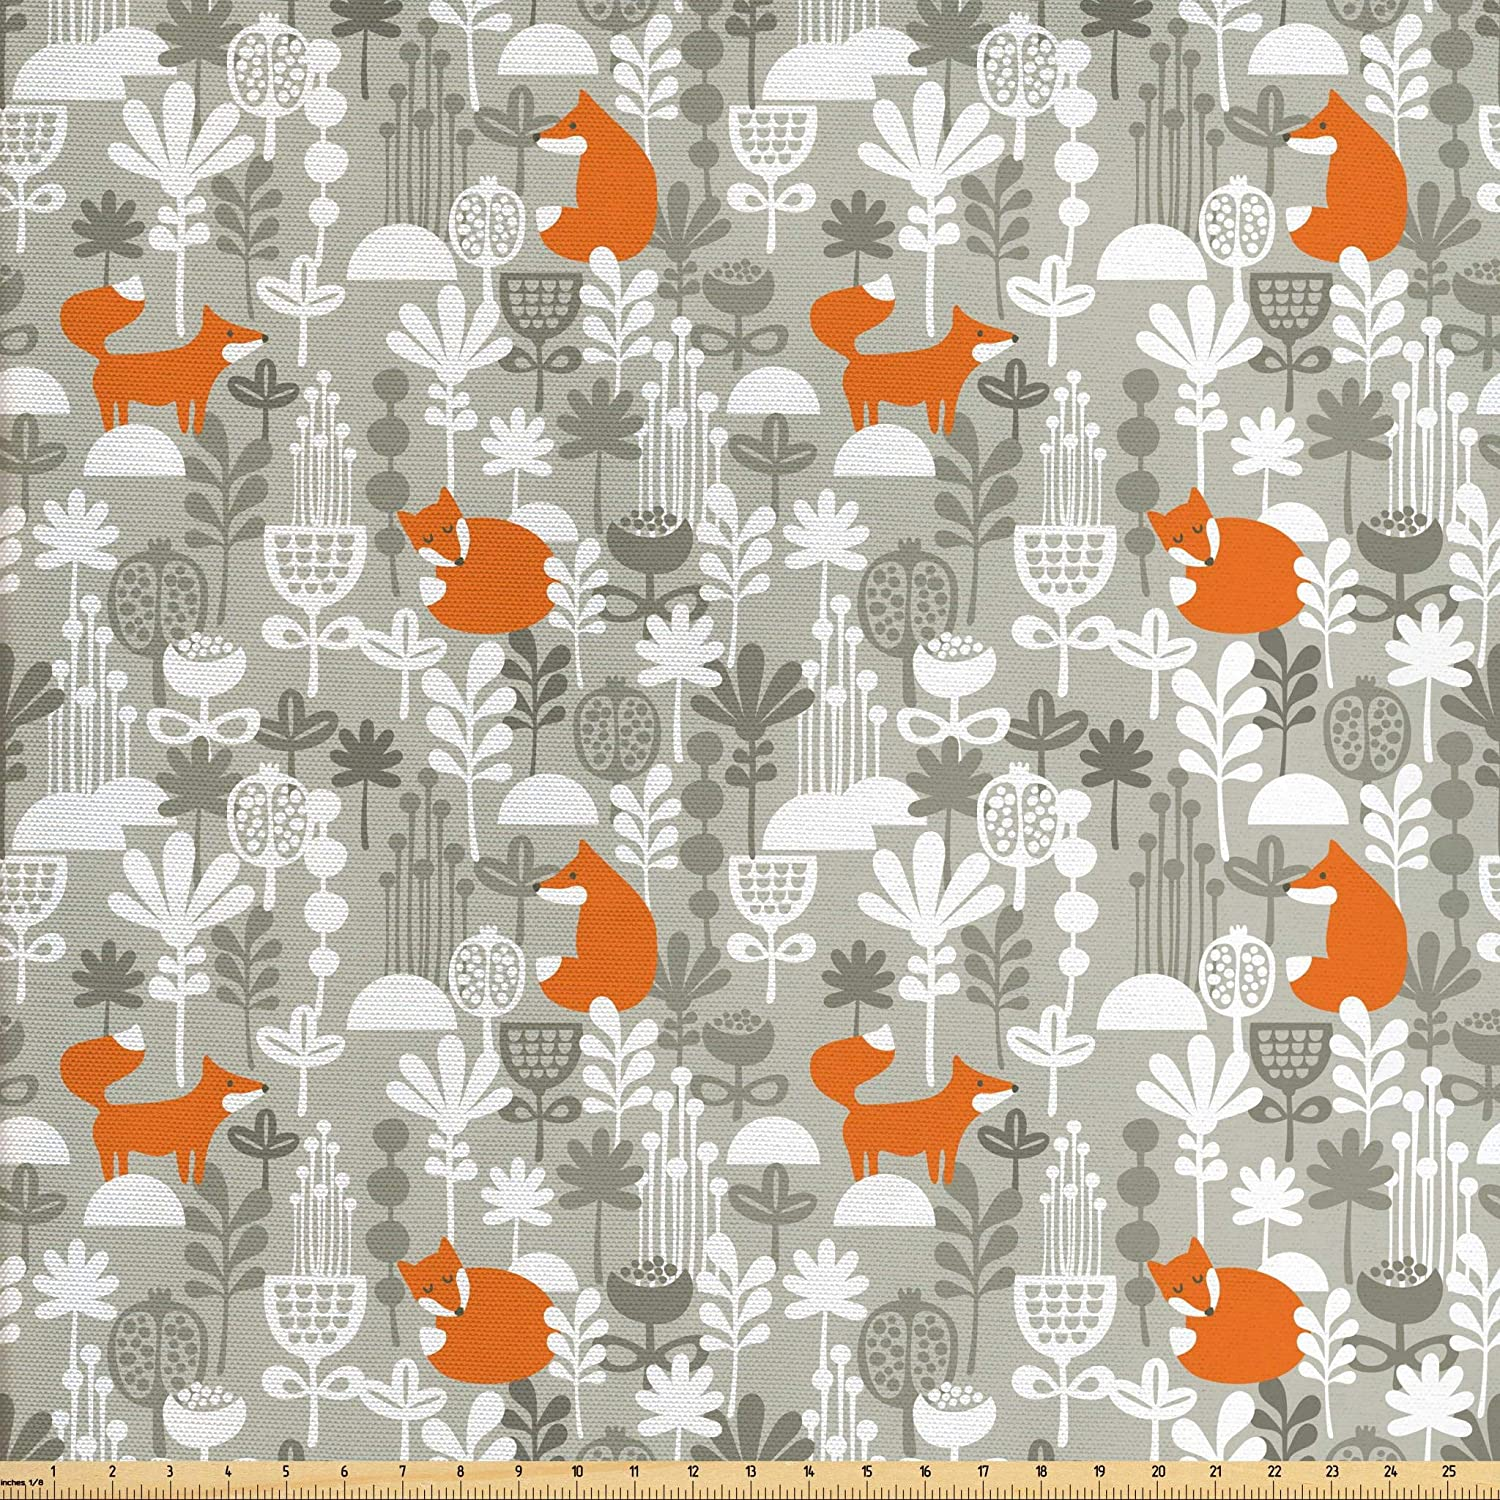 Ambesonne Fox Fabric by The Yard, Small Animals of The European Forests Doodle Style Floral Arrangement, Decorative Fabric for Upholstery and Home Accents, 2 Yards, Orange White